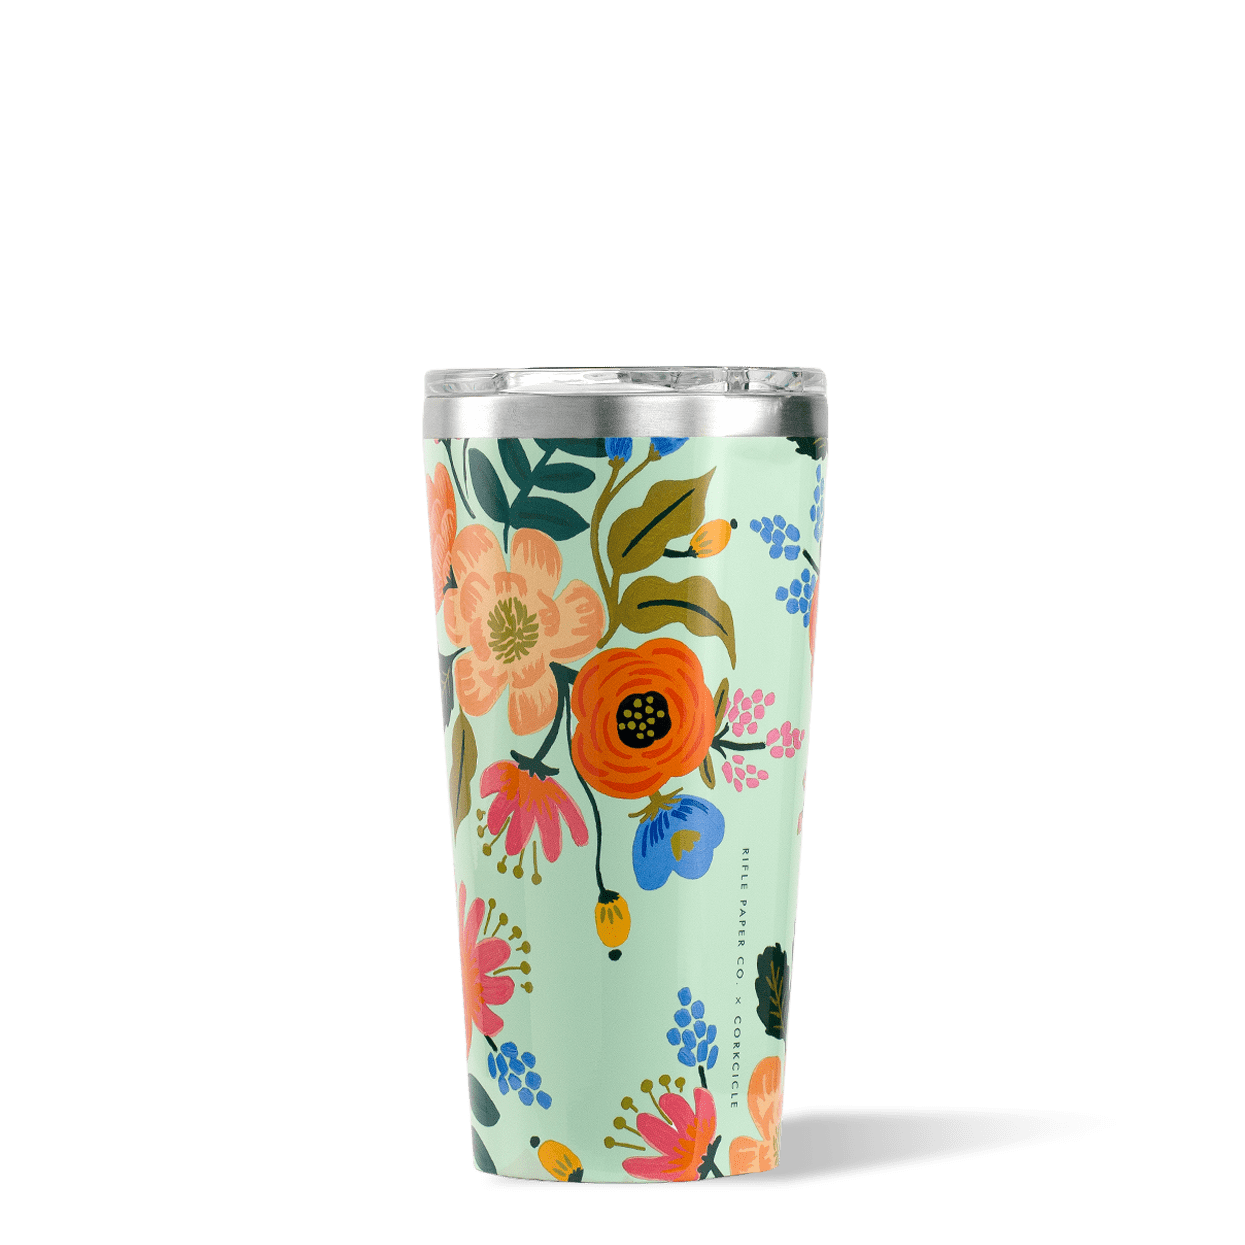 Lively Floral Rifle Paper Co. x Corkcicle 16oz Tumbler